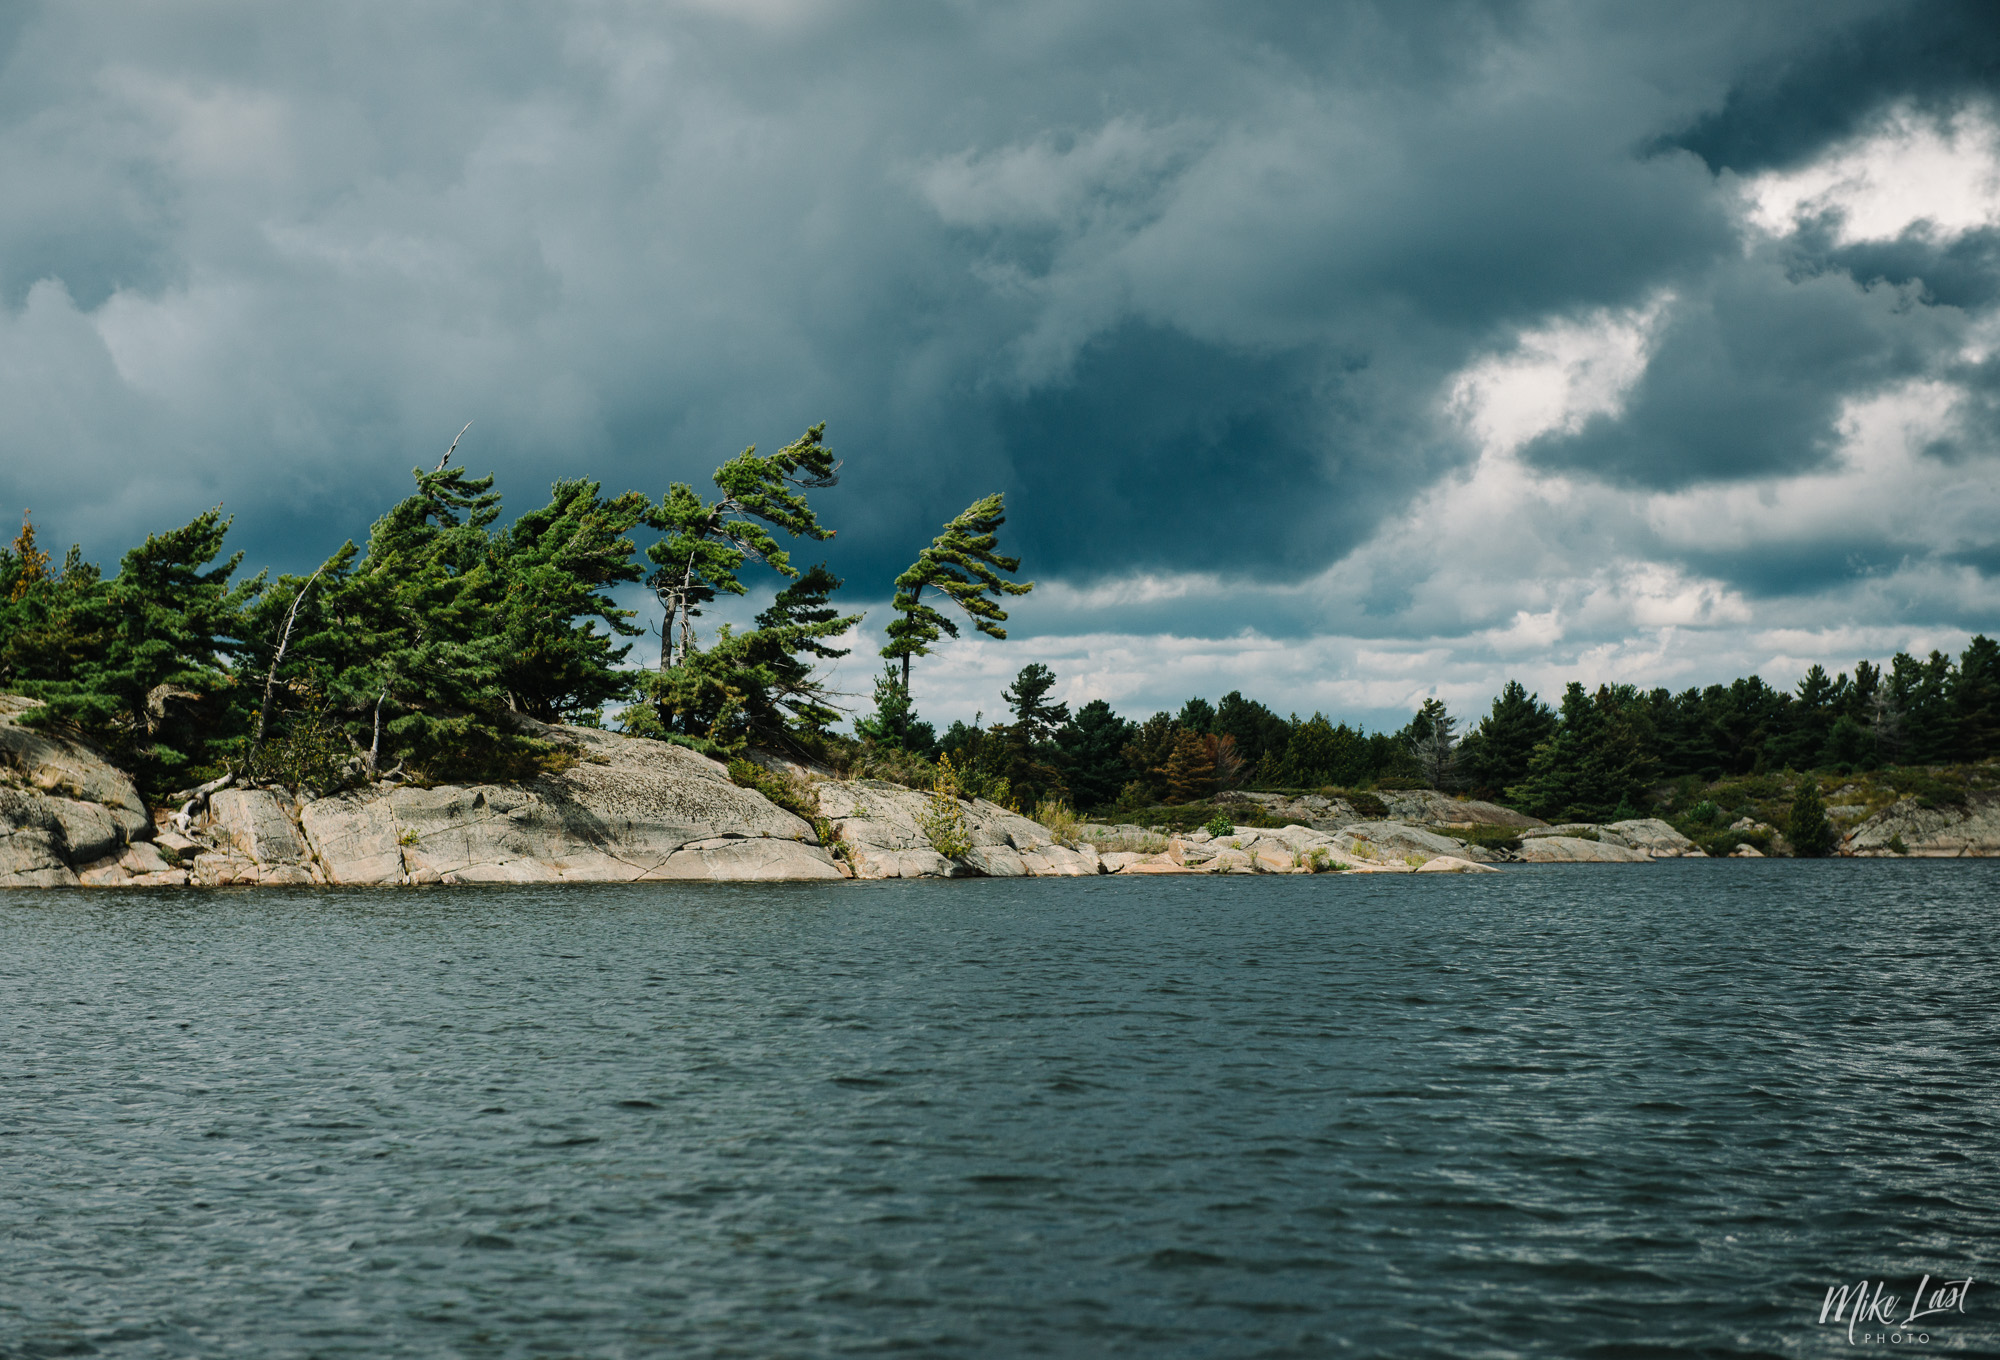 Wind Swept Pines in French River Provincial Park